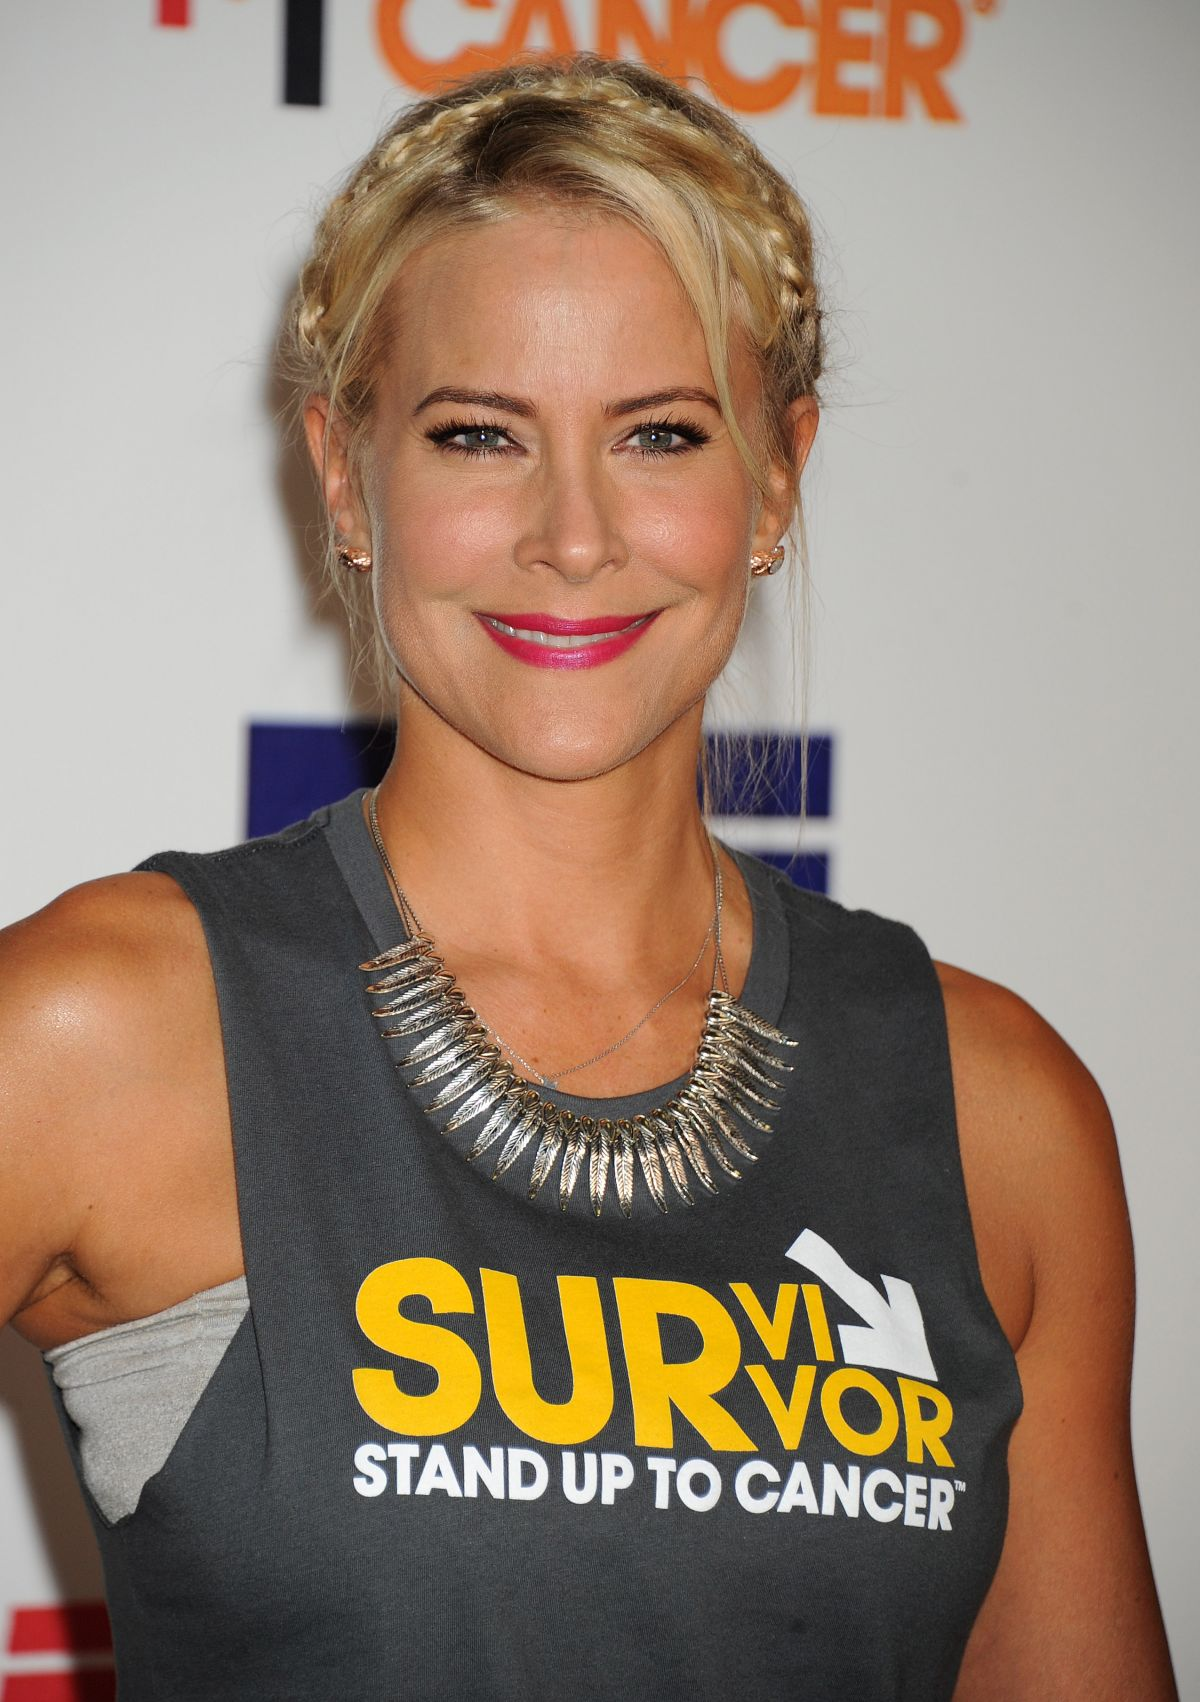 Brittany Daniel Family Pictures, Husband, Age, Sister